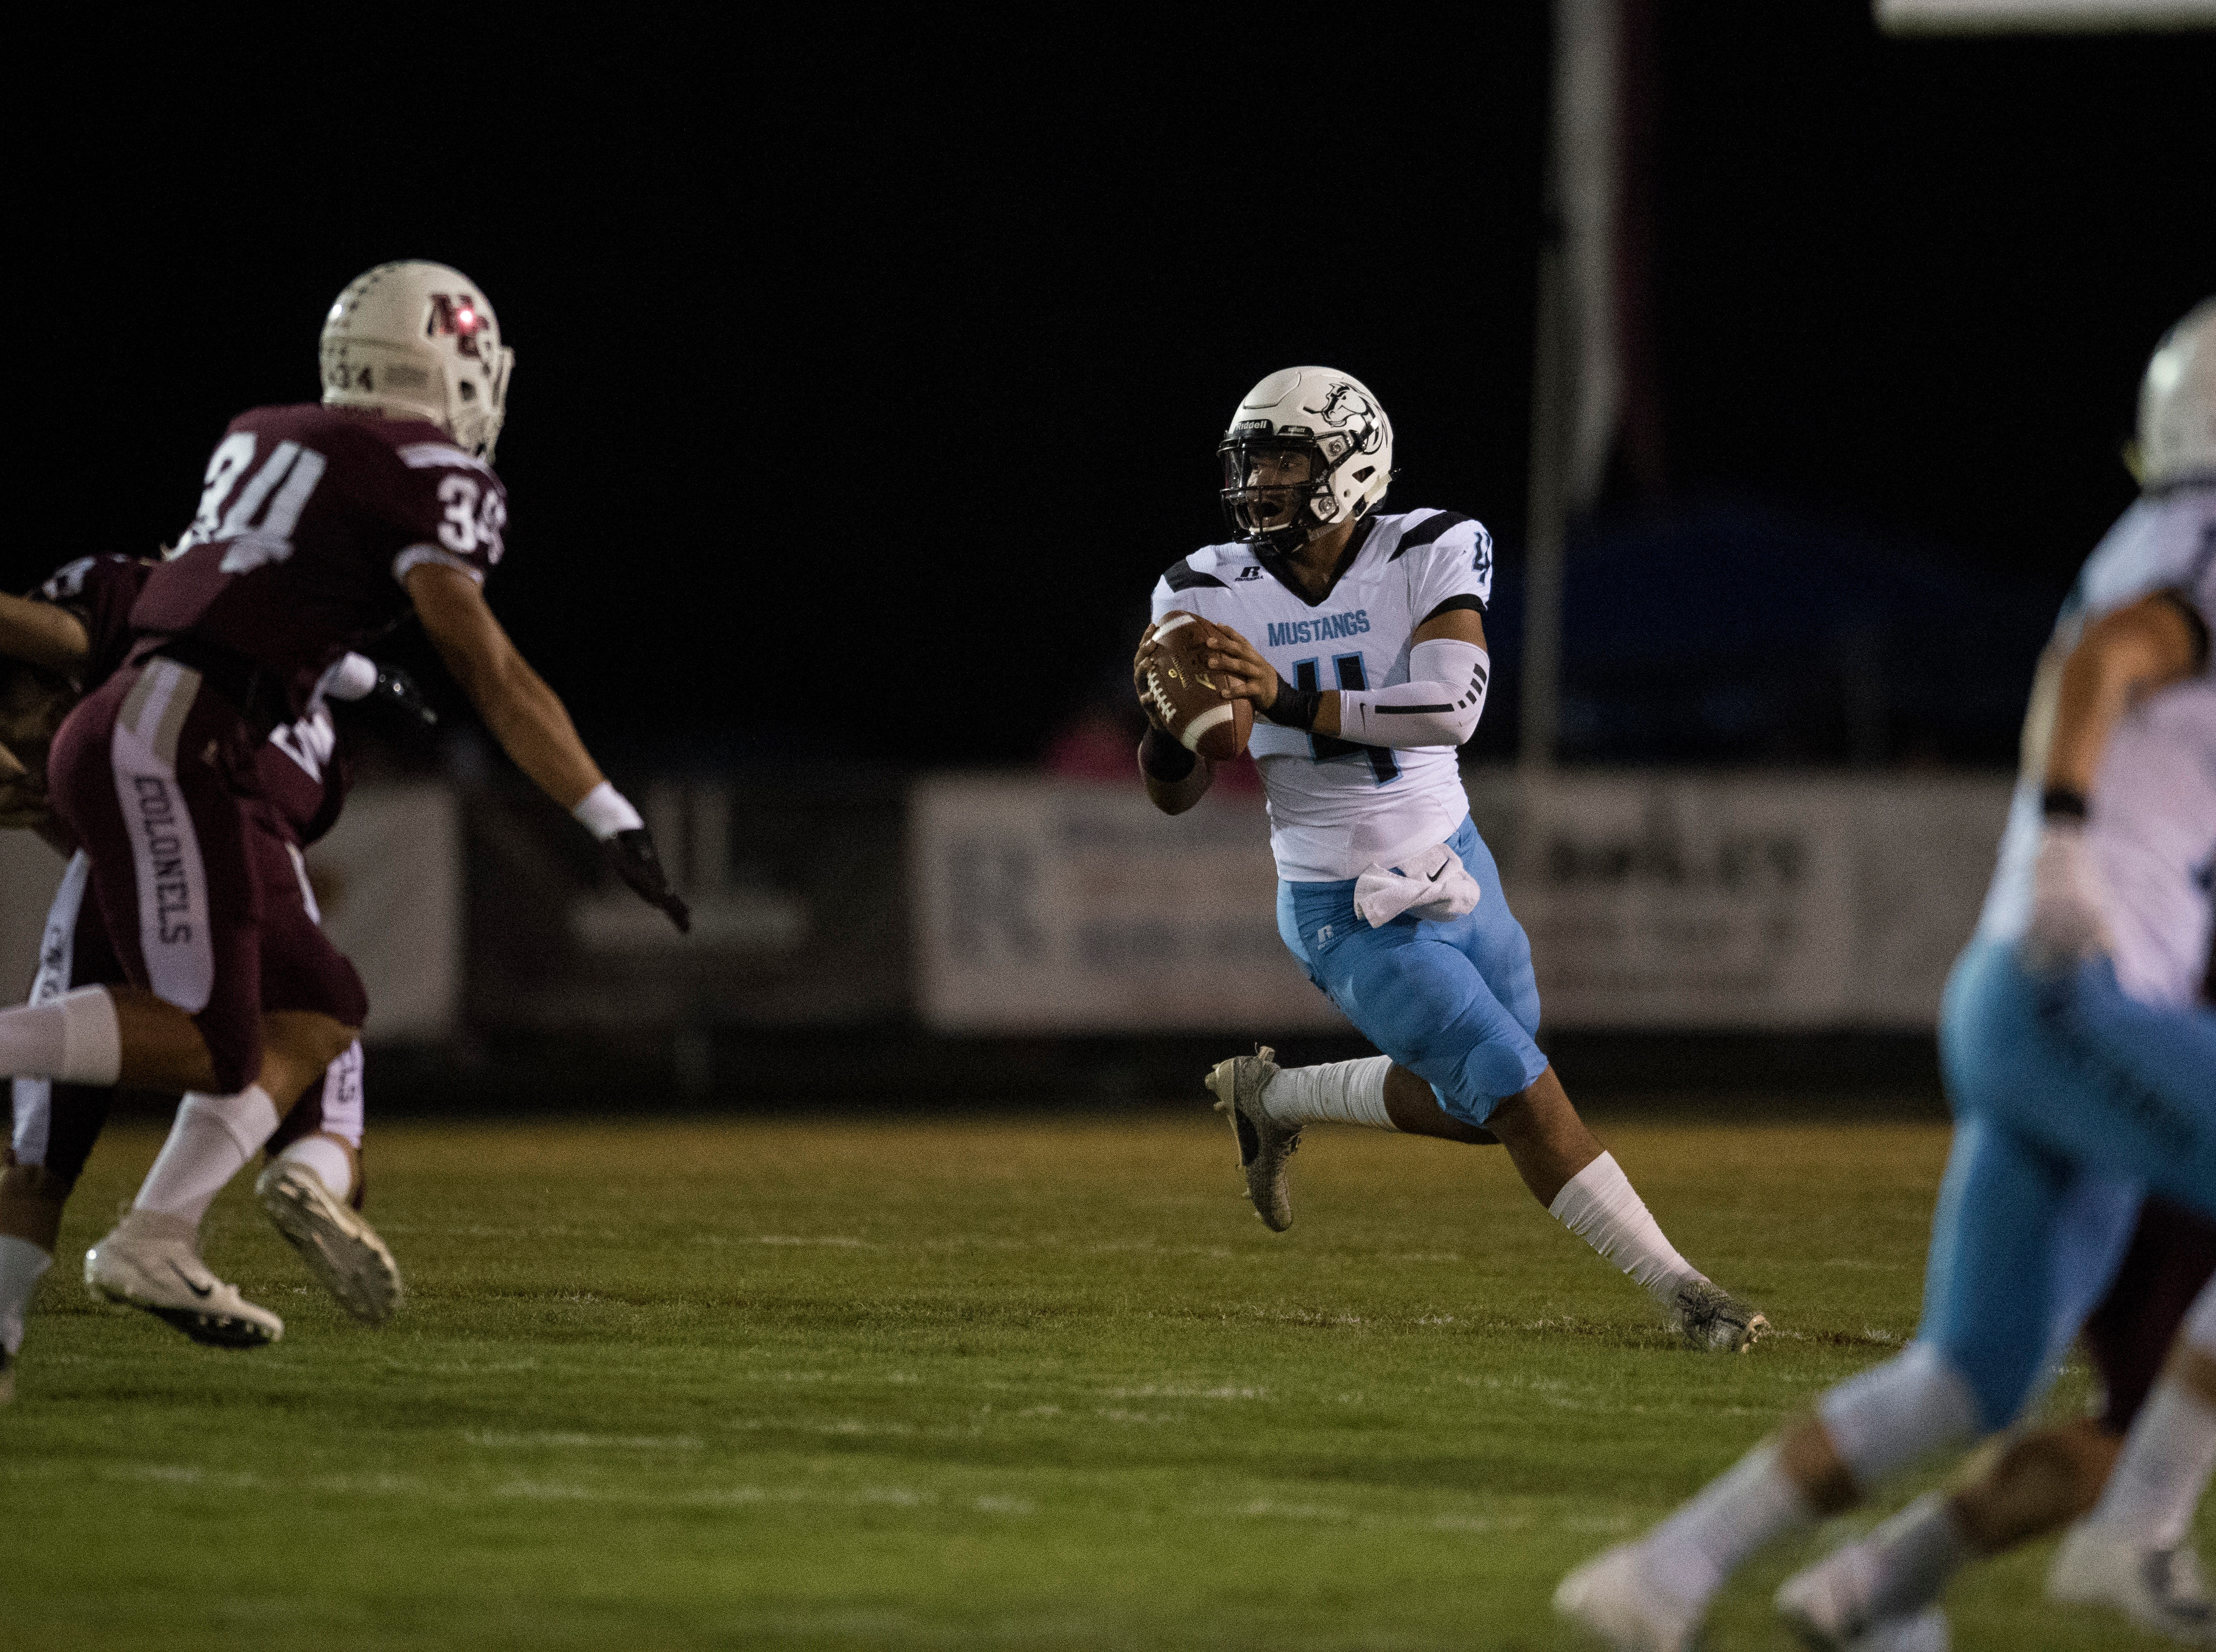 Muhlenberg County's Bronzyn Healy (4) looks for an open receiver during the Henderson vs Muhlenberg County game at Colonel Stadium Friday, Sept. 28, 2018. The Henderson County Colonels won, 61-6.